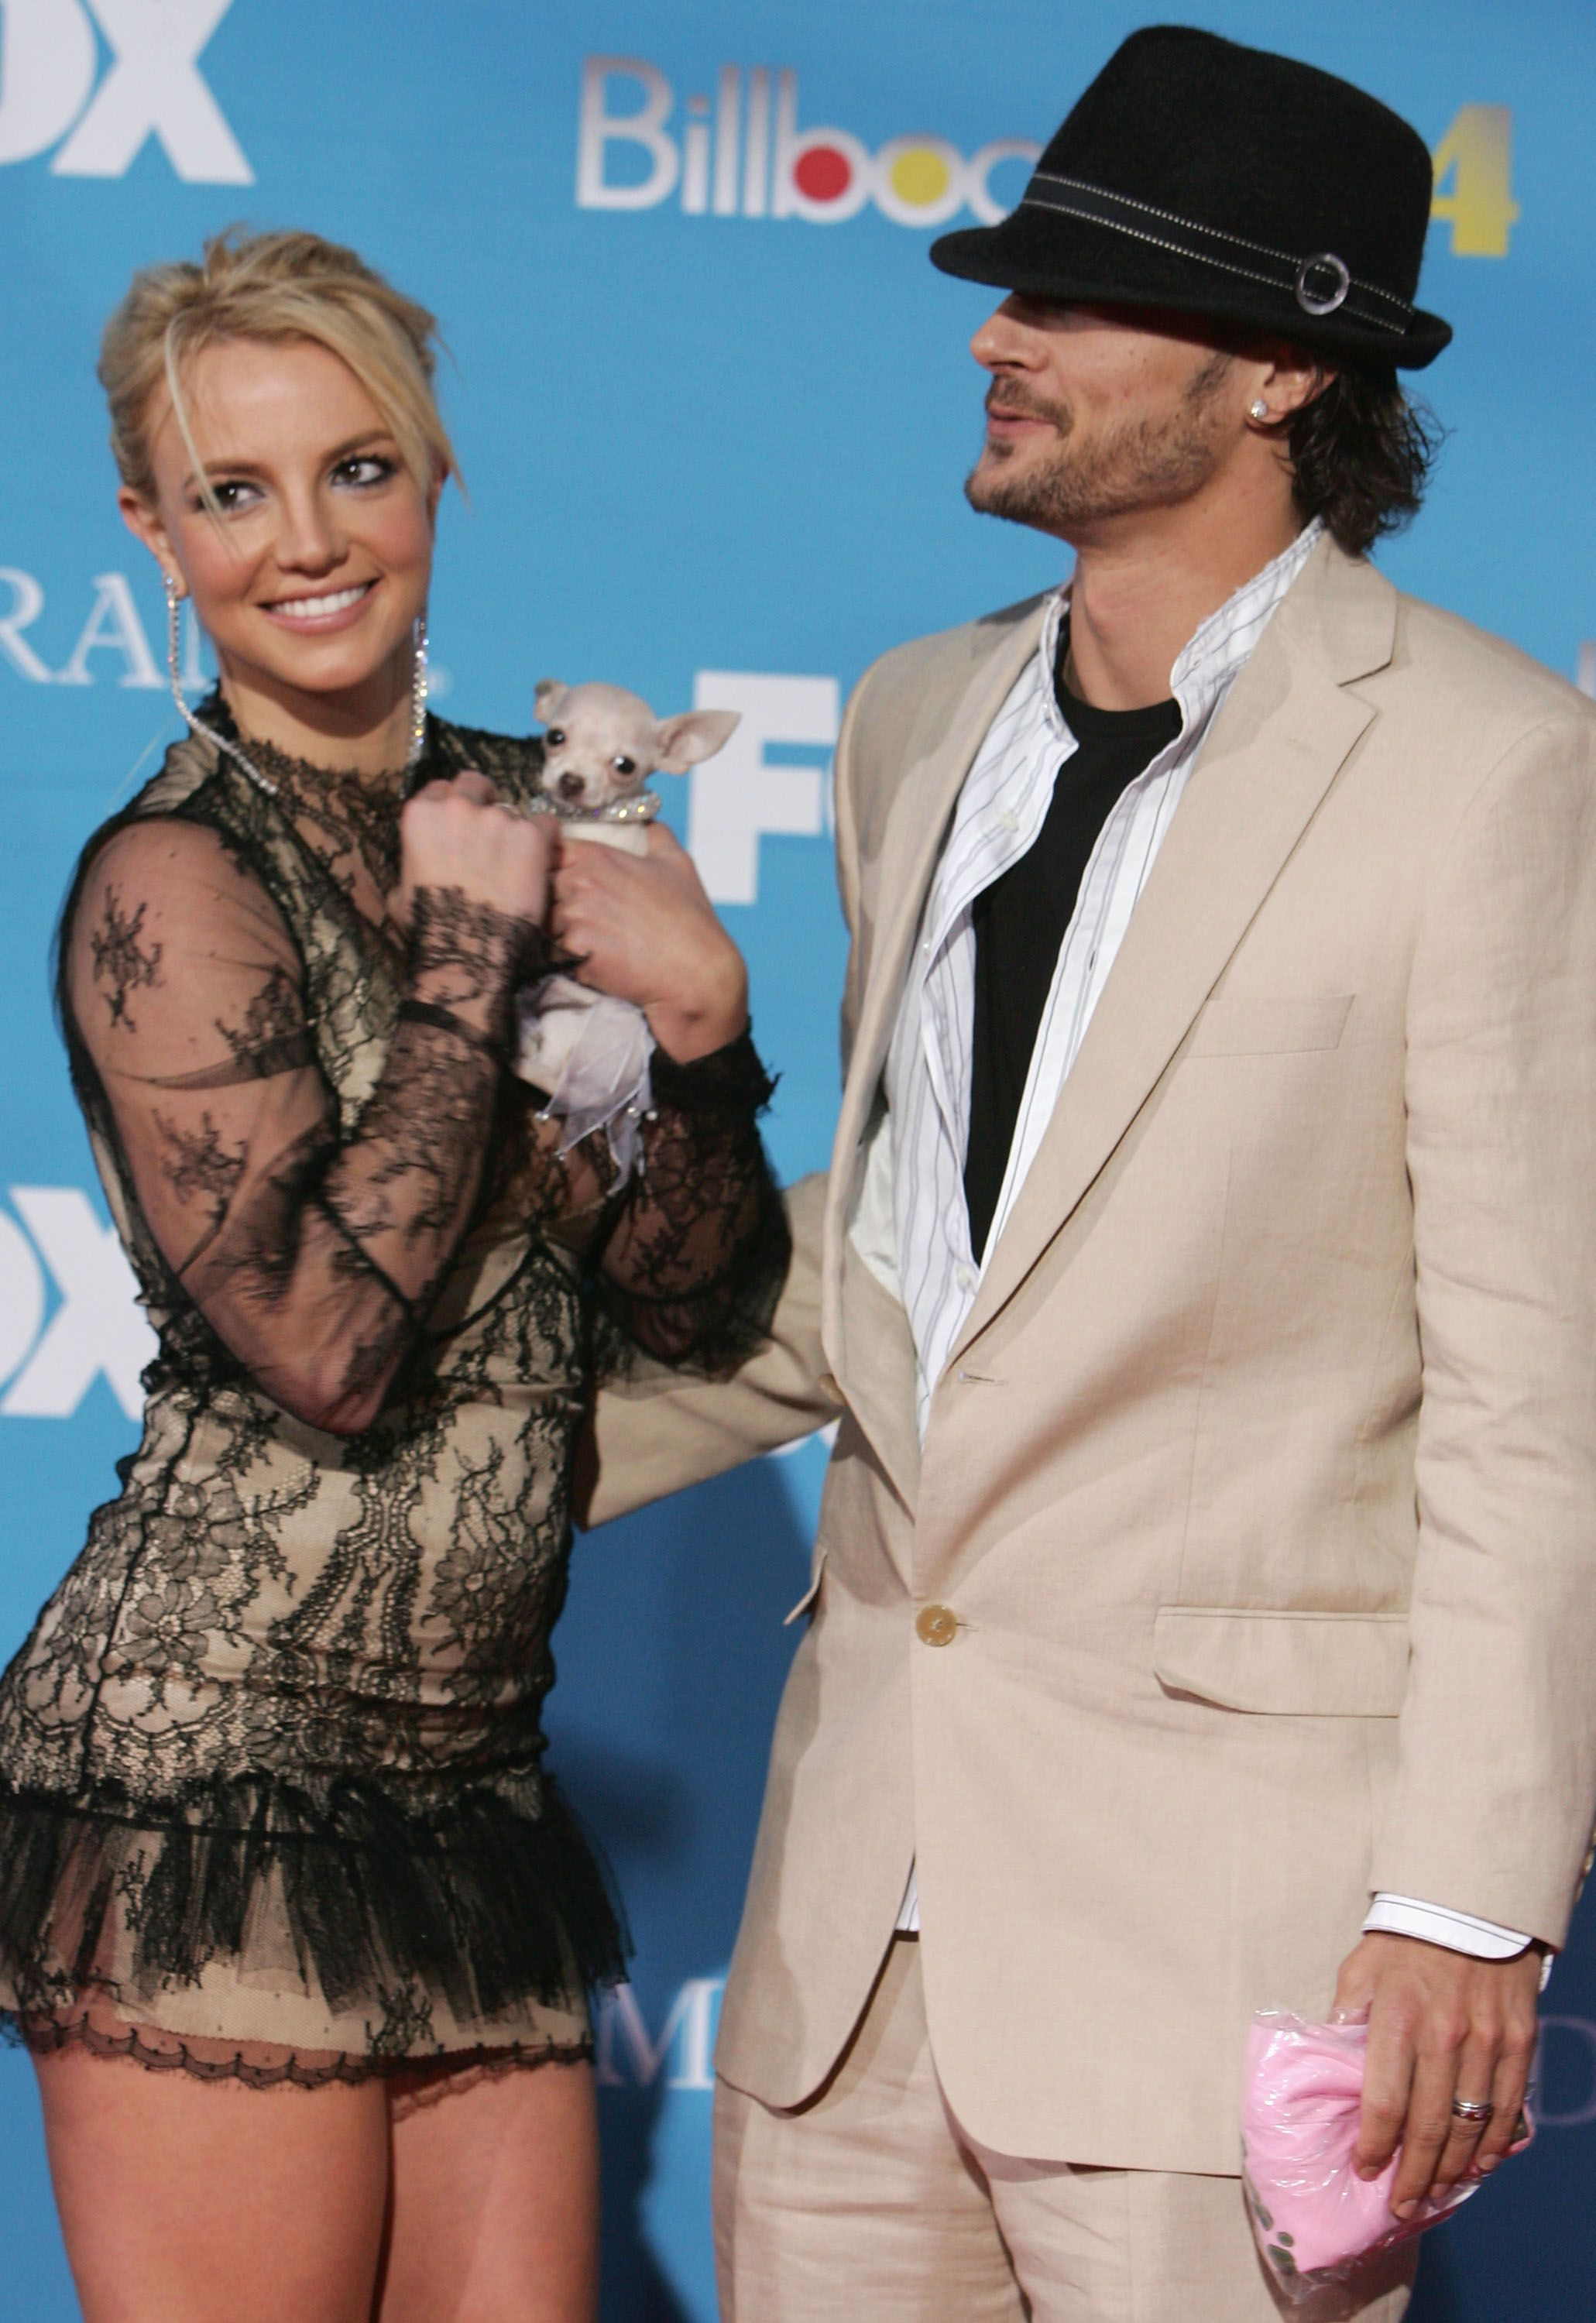 Britney Spears and husband Kevin Federline arrive at the 2004 Billboard Music Awards. | Source: Getty Images